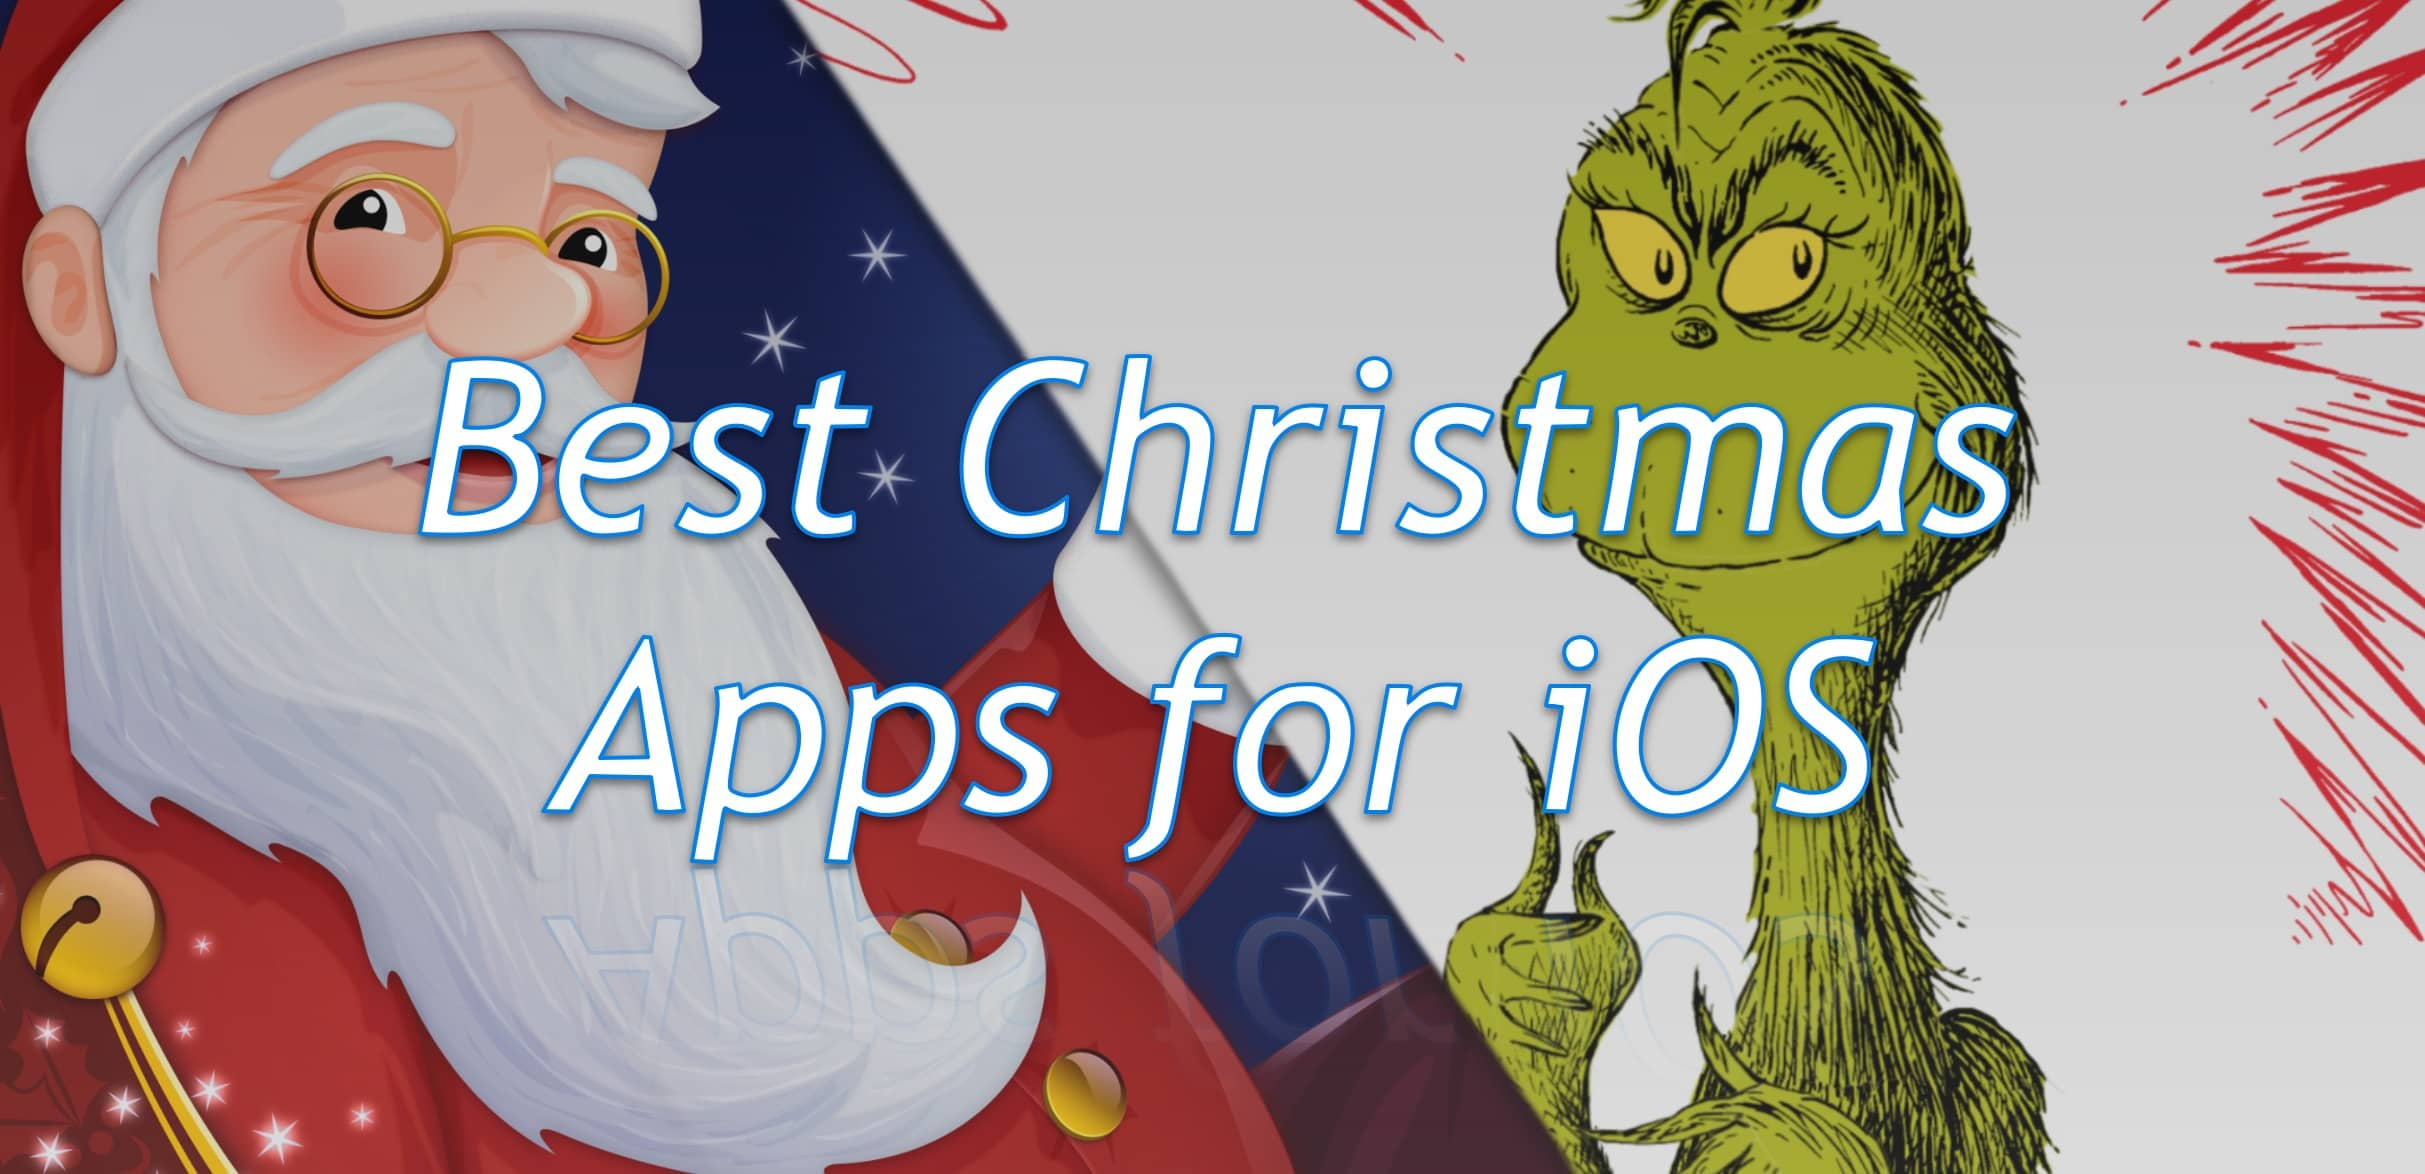 The Best Christmas Apps for iOS